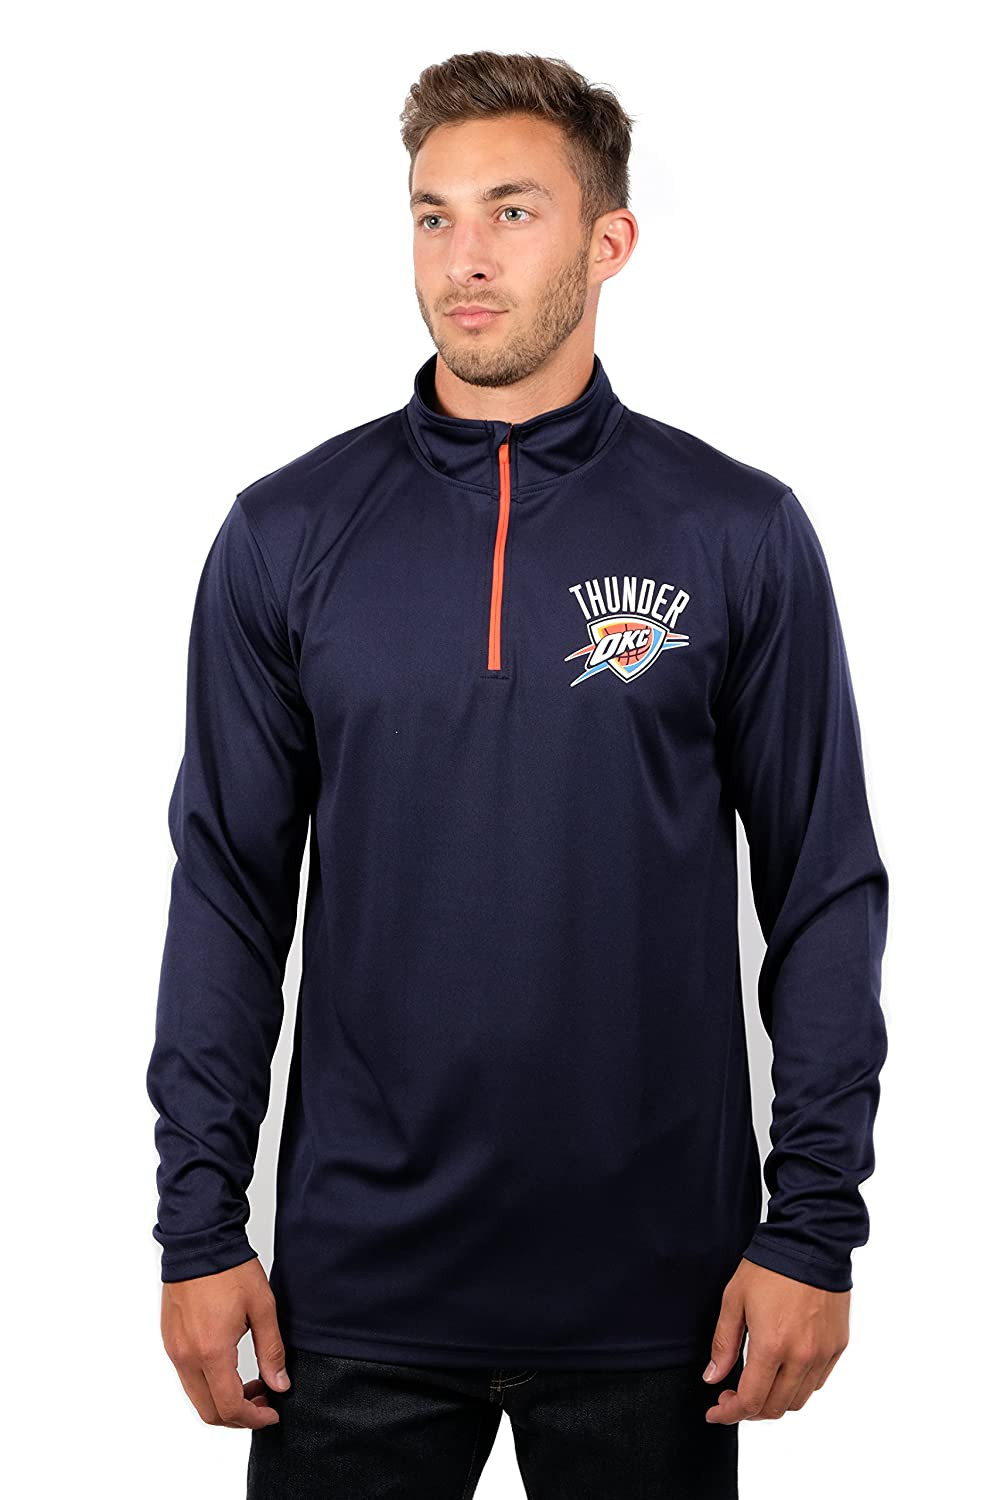 (Oklahoma City Thunder, Medium) - UNK NBA Men's Quarter Zip Pullover Shirt Athletic Quick Dry Tee, Team Colour B076LPRCHX